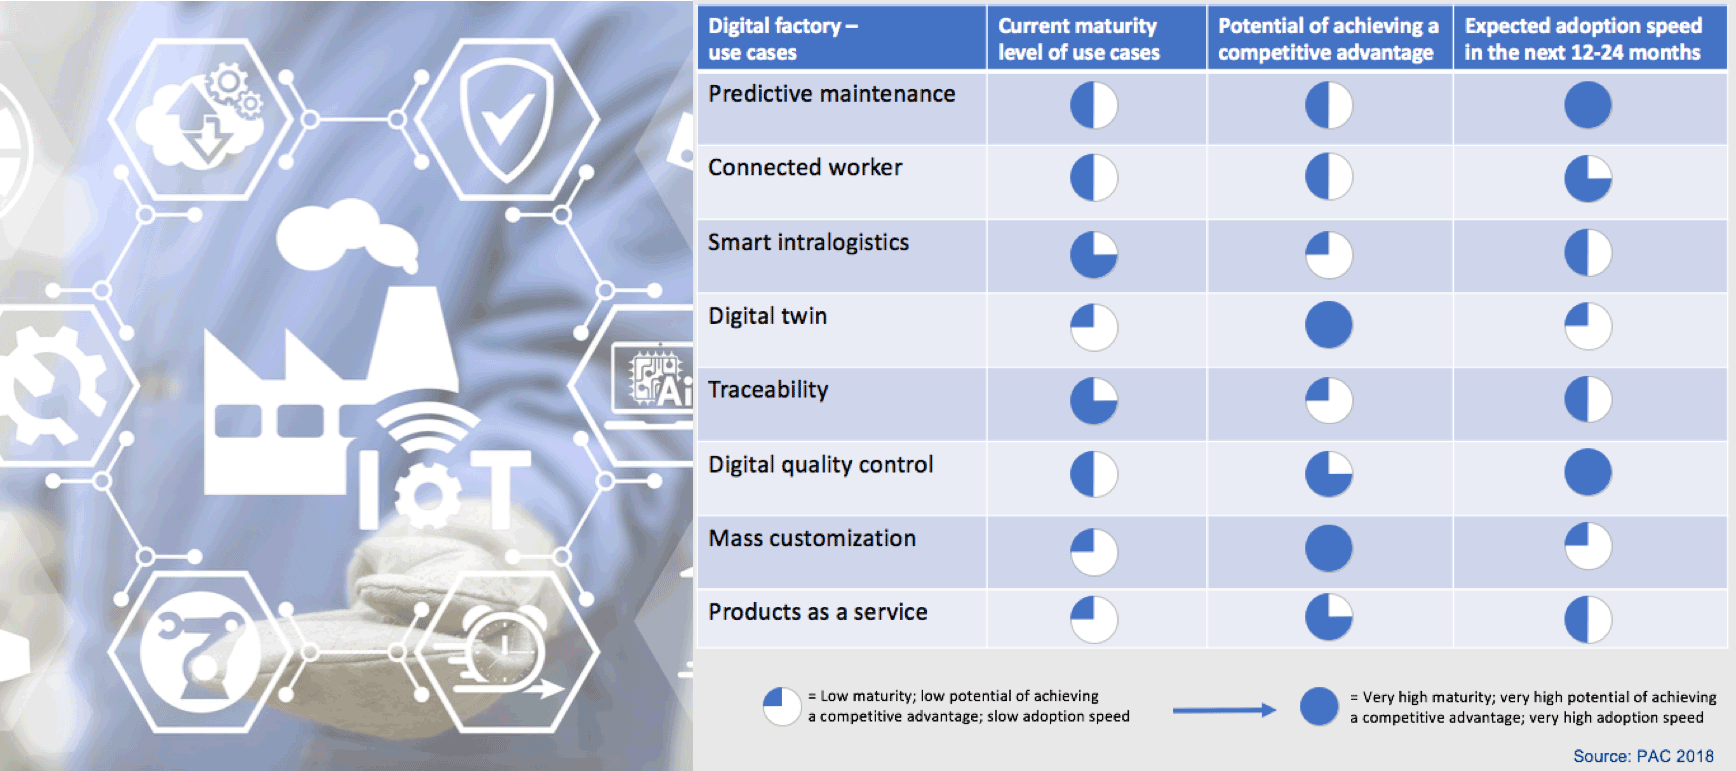 Digital Factory classification use cases